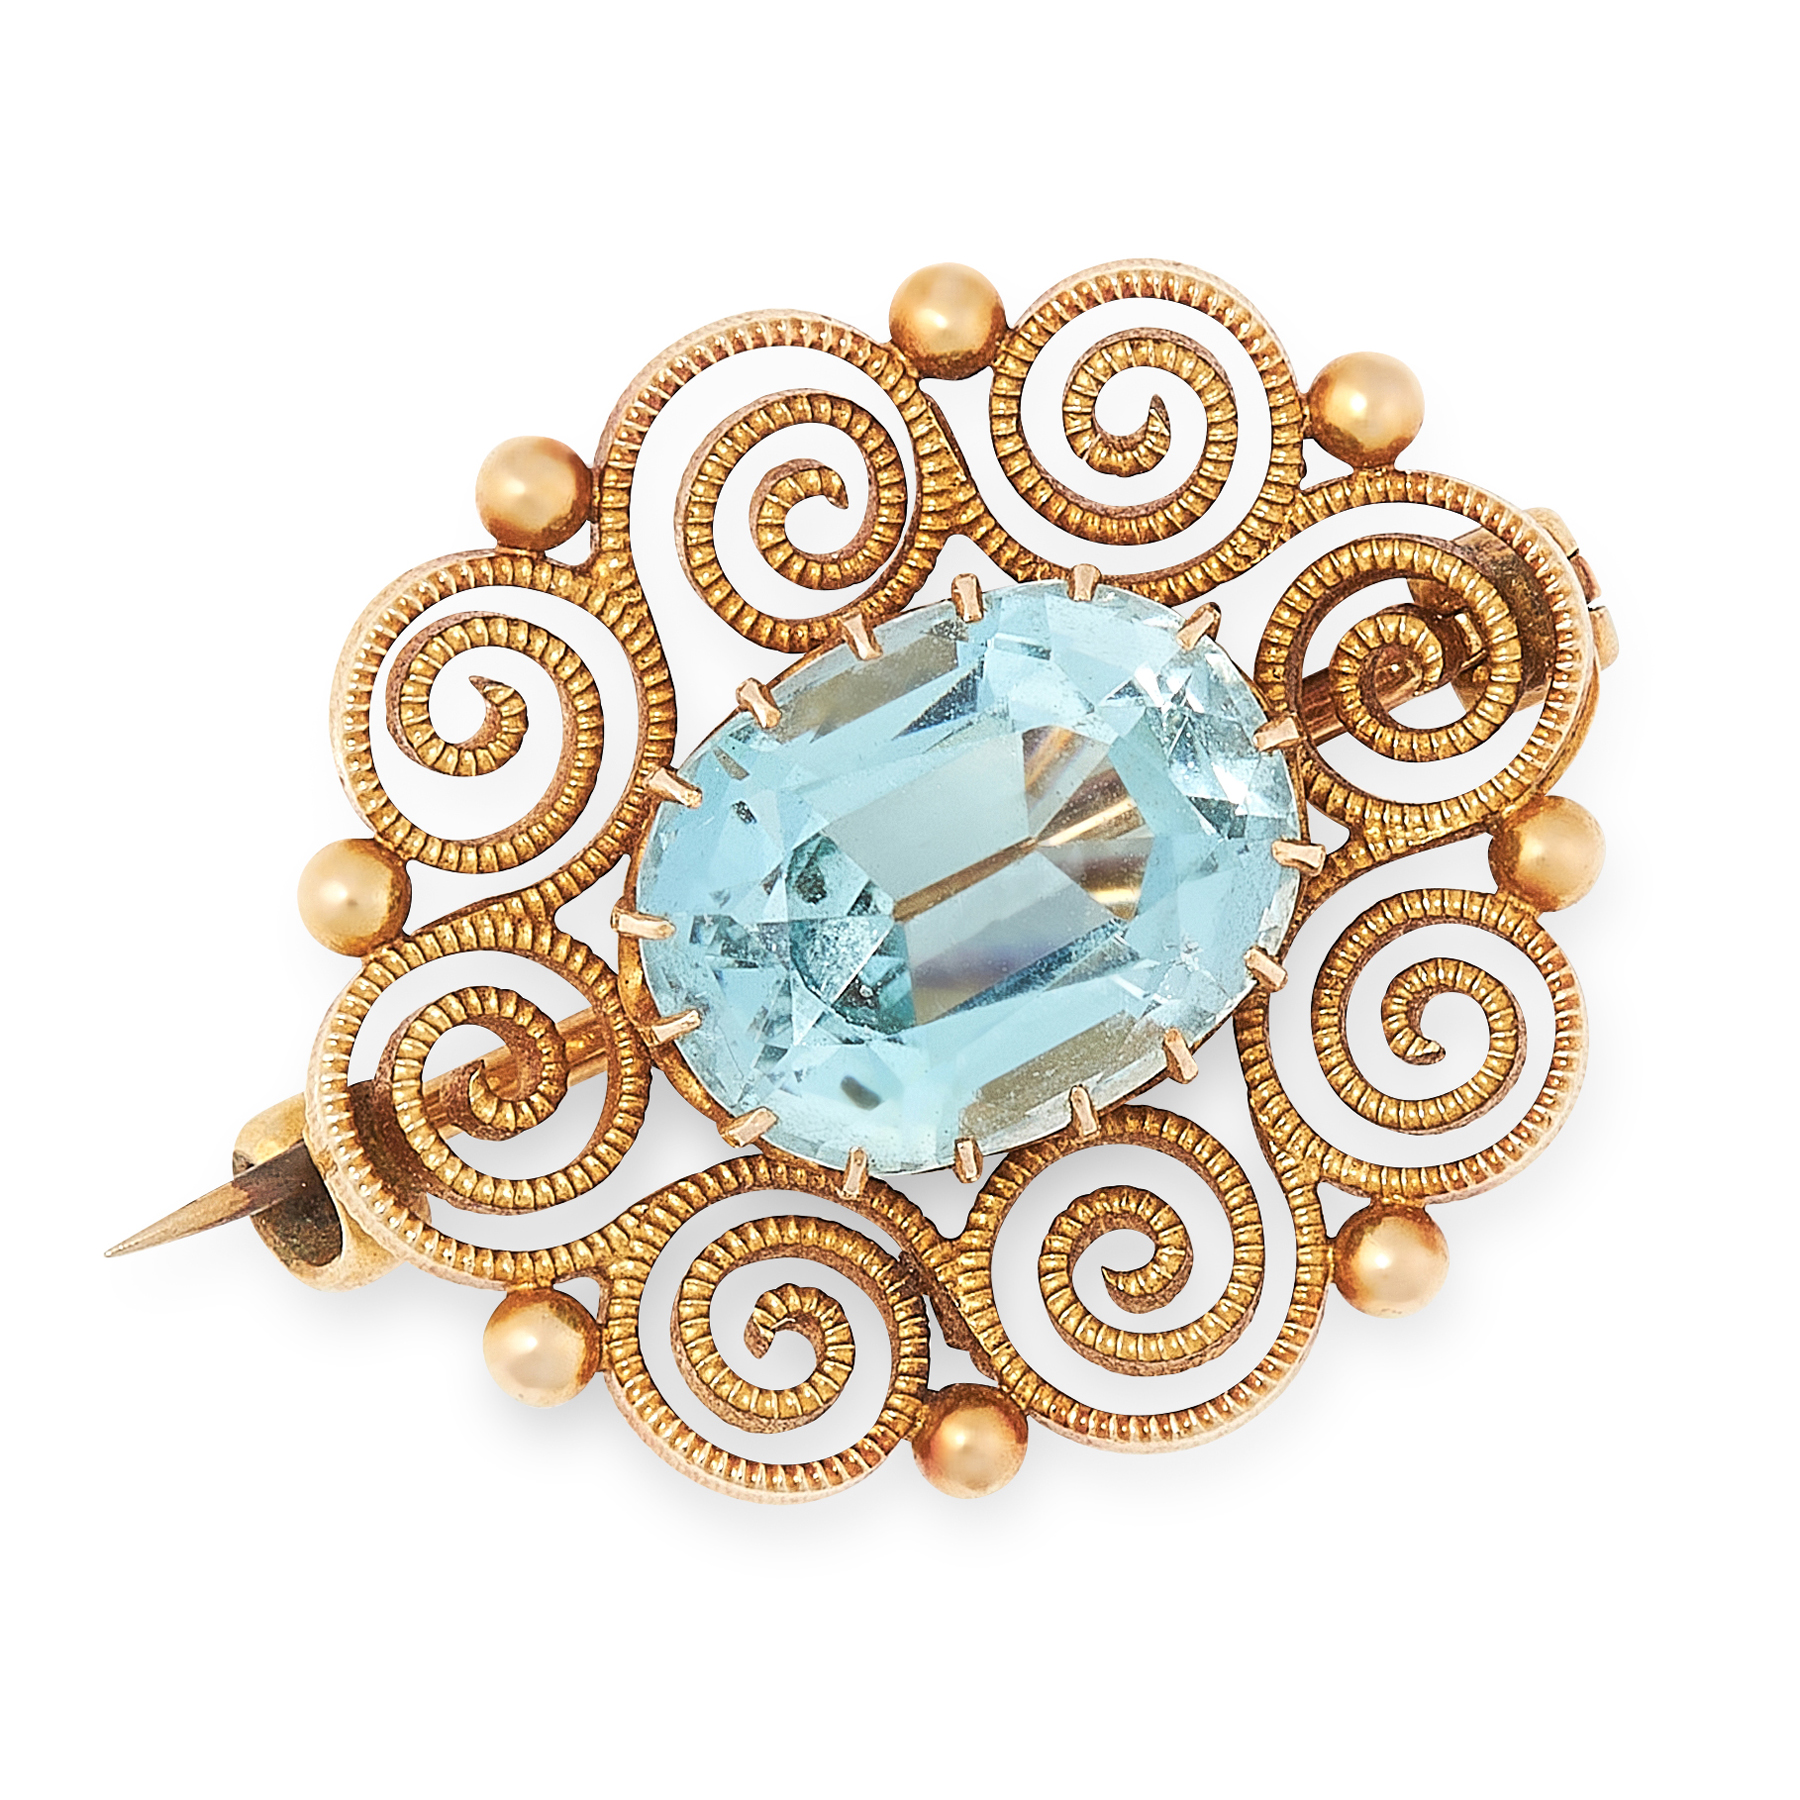 Lot 48 - A ZIRCON BROOCH in high carat yellow gold, set with an oval cut zircon of 6.85 carats, within a